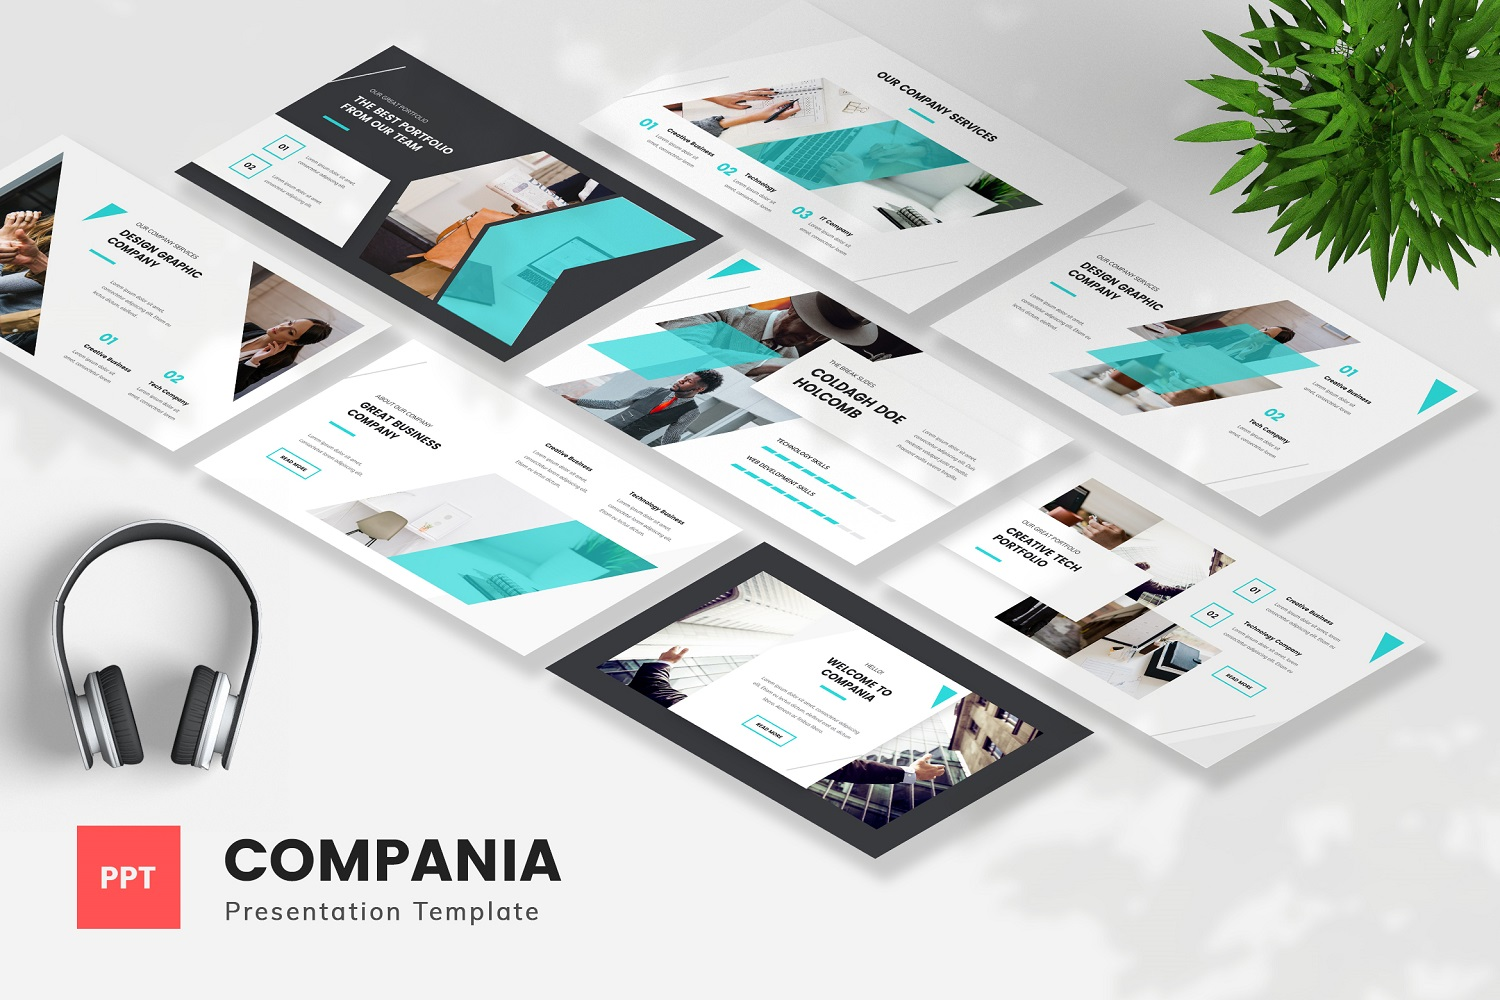 Compania - Company Profile Powerpoint Template